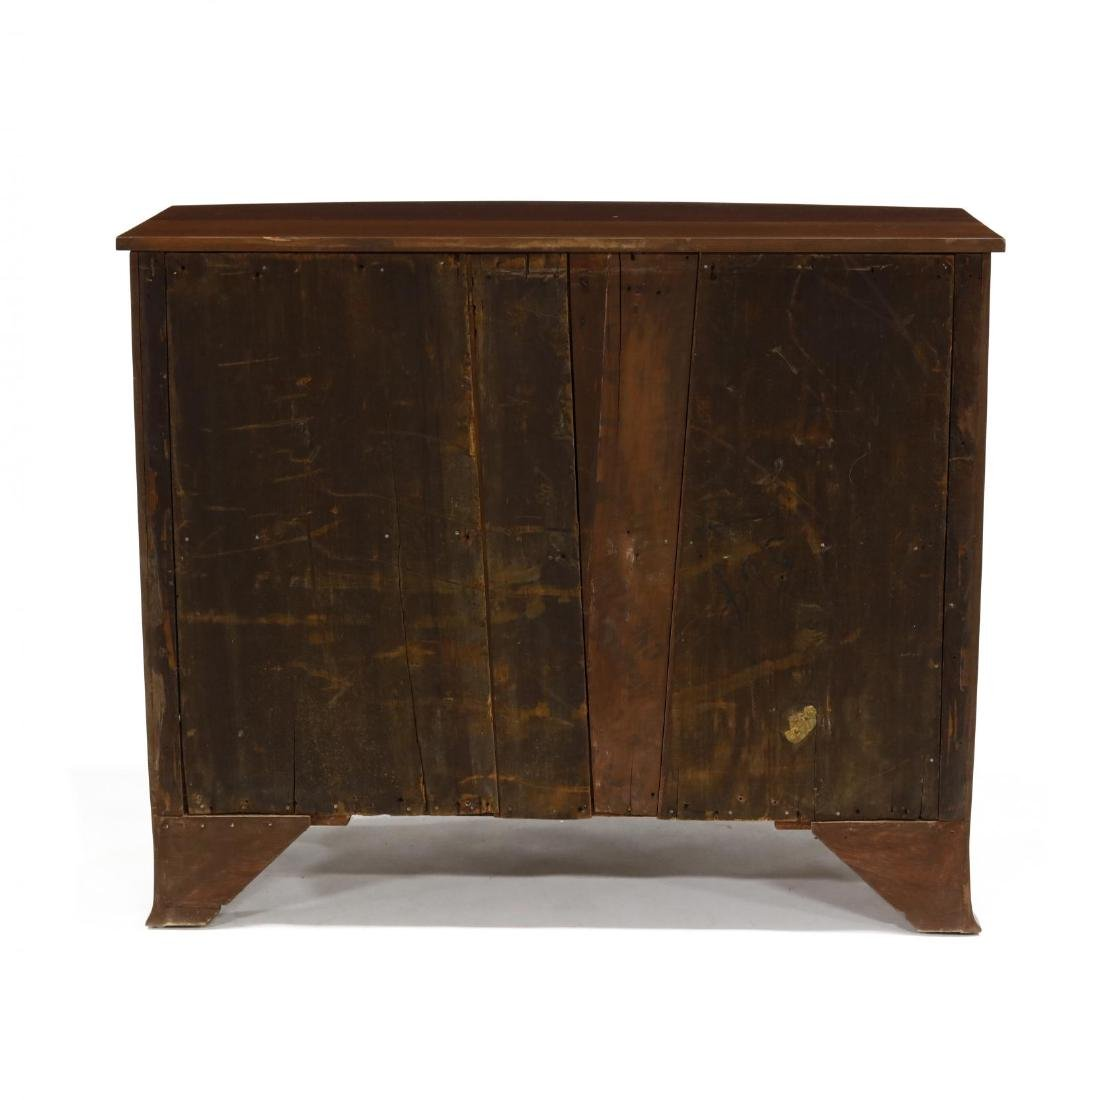 American Federal Inlaid Chest of Drawers - 6